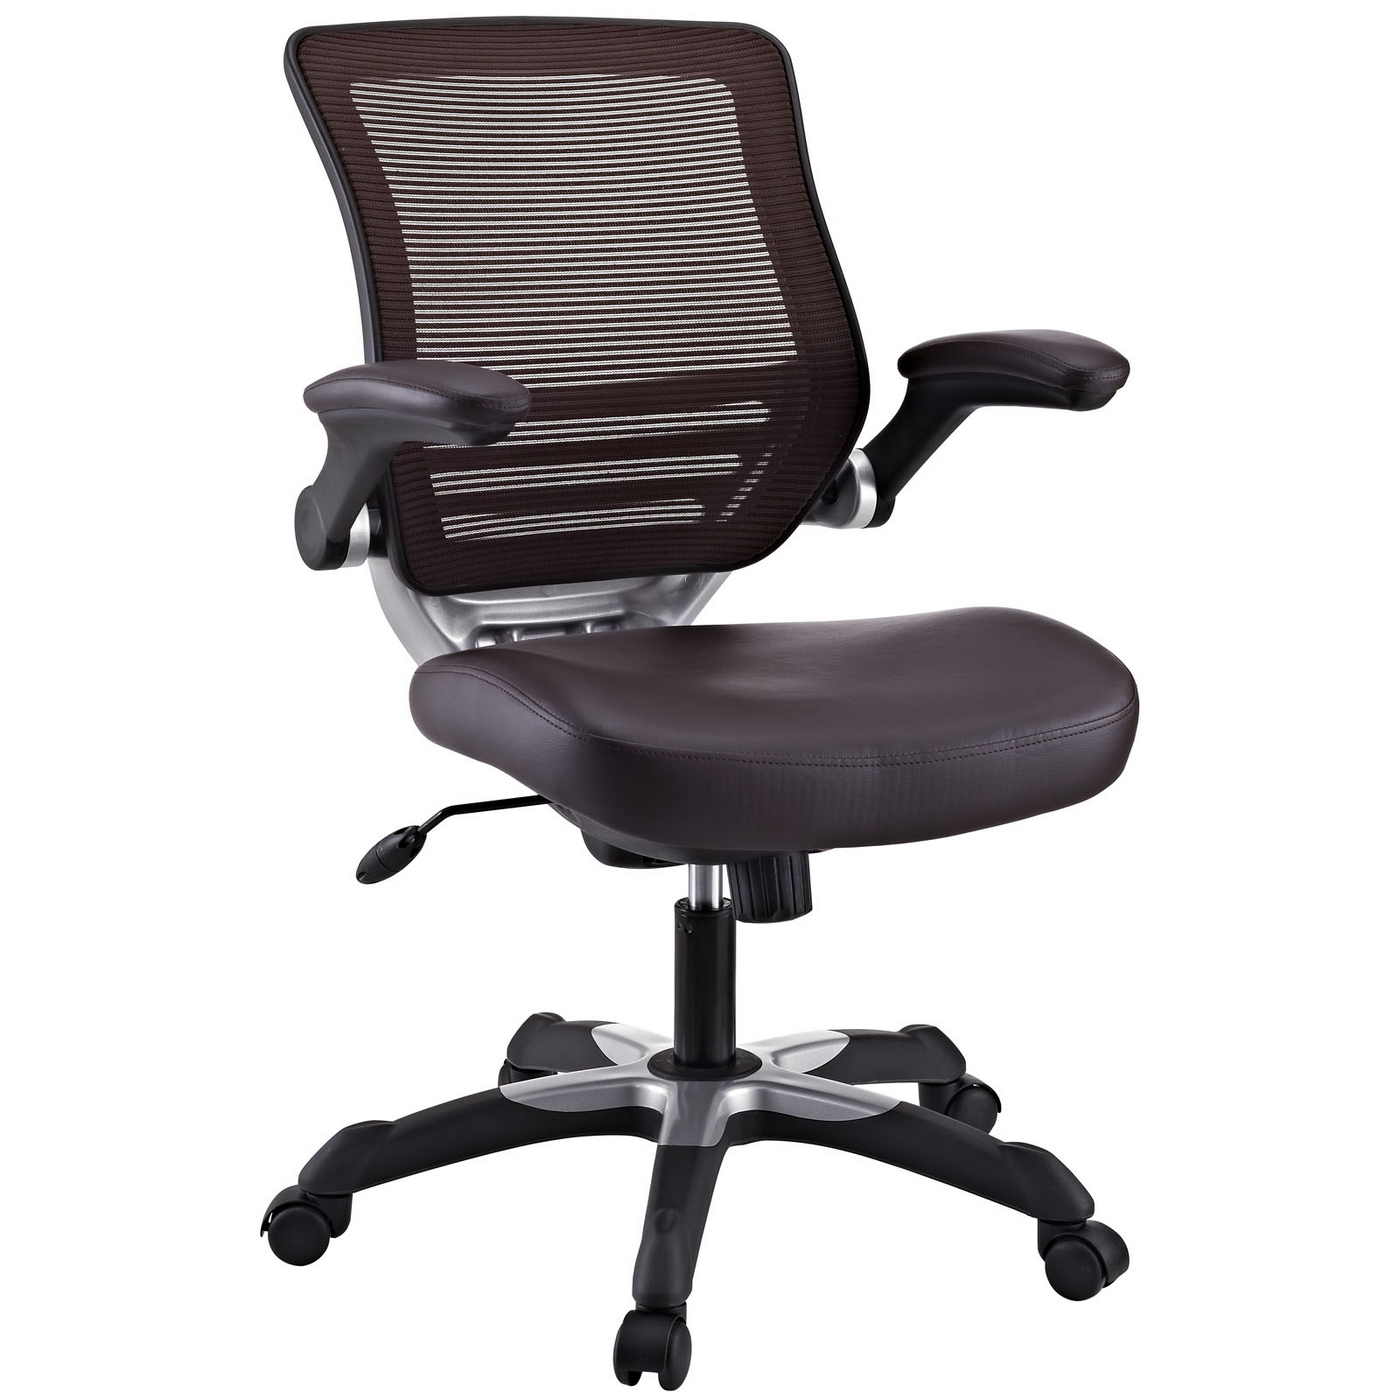 office chair vinyl oversized leather and a half edge modern adjustable ergonomic brown